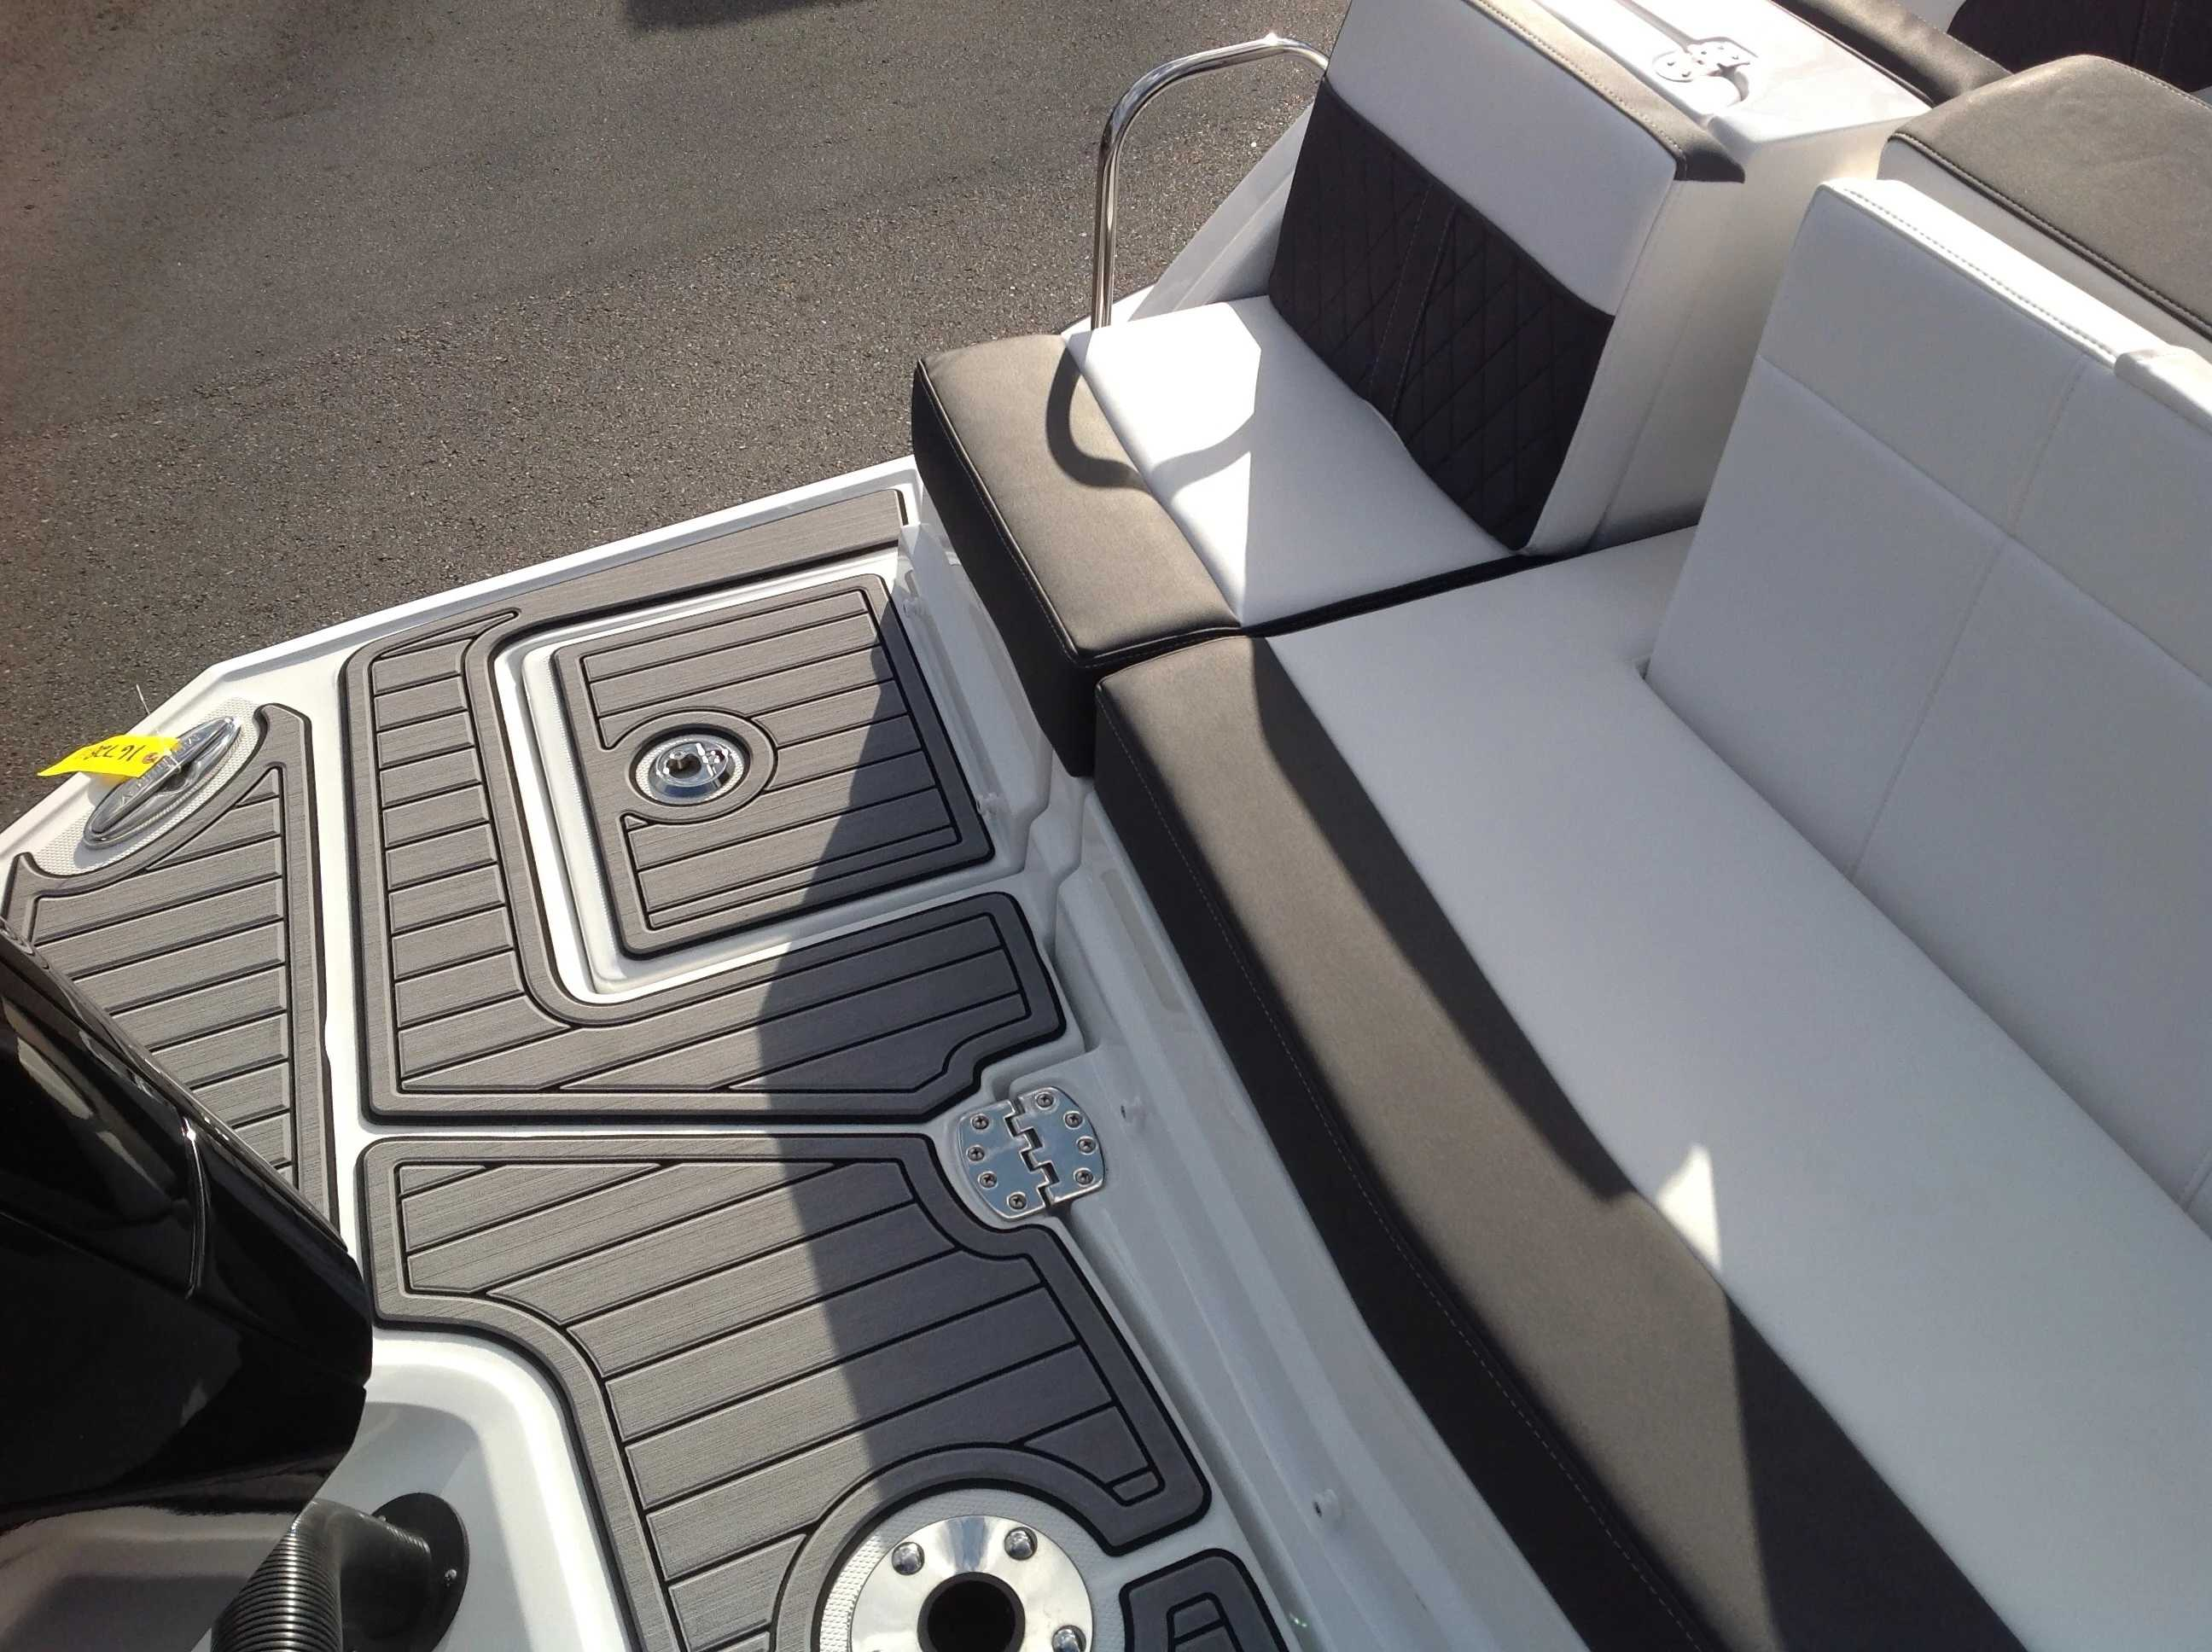 2021 Monterey boat for sale, model of the boat is M45 & Image # 14 of 21